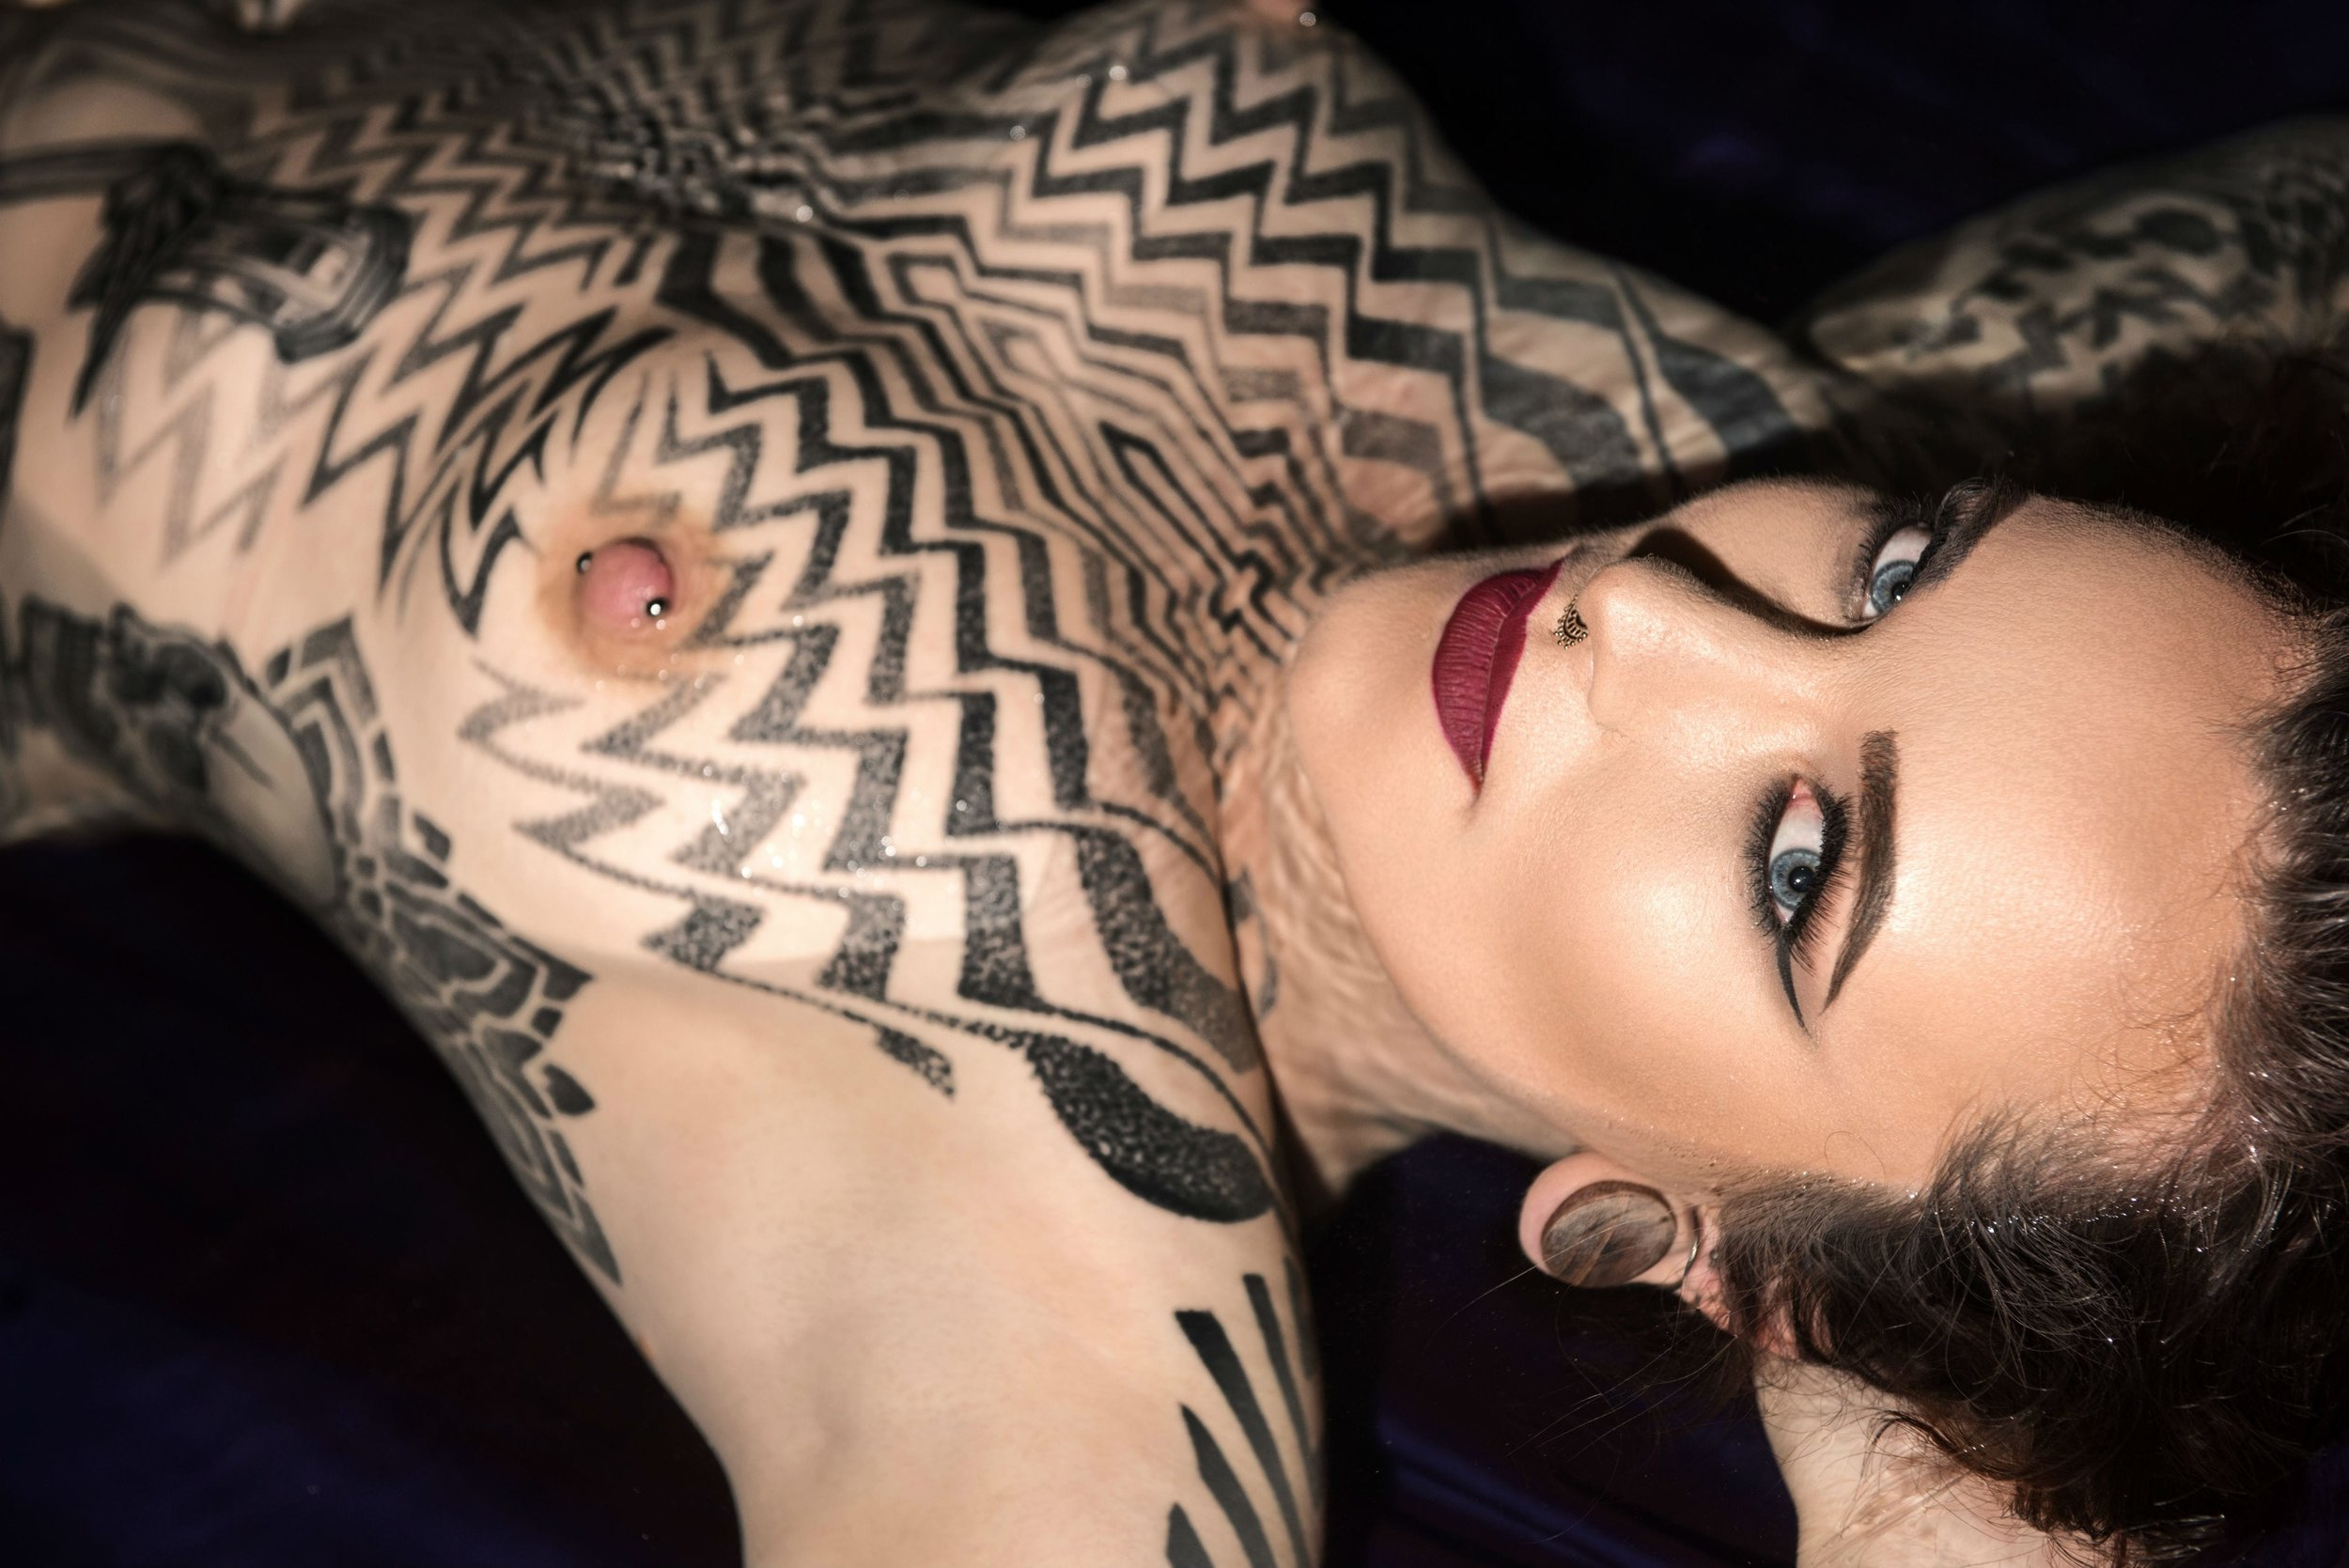 Miss Tallula Darling kinky escort, tattooed femdom, Pro Domme,  Mistress, BDSM dominatrix, painted lady